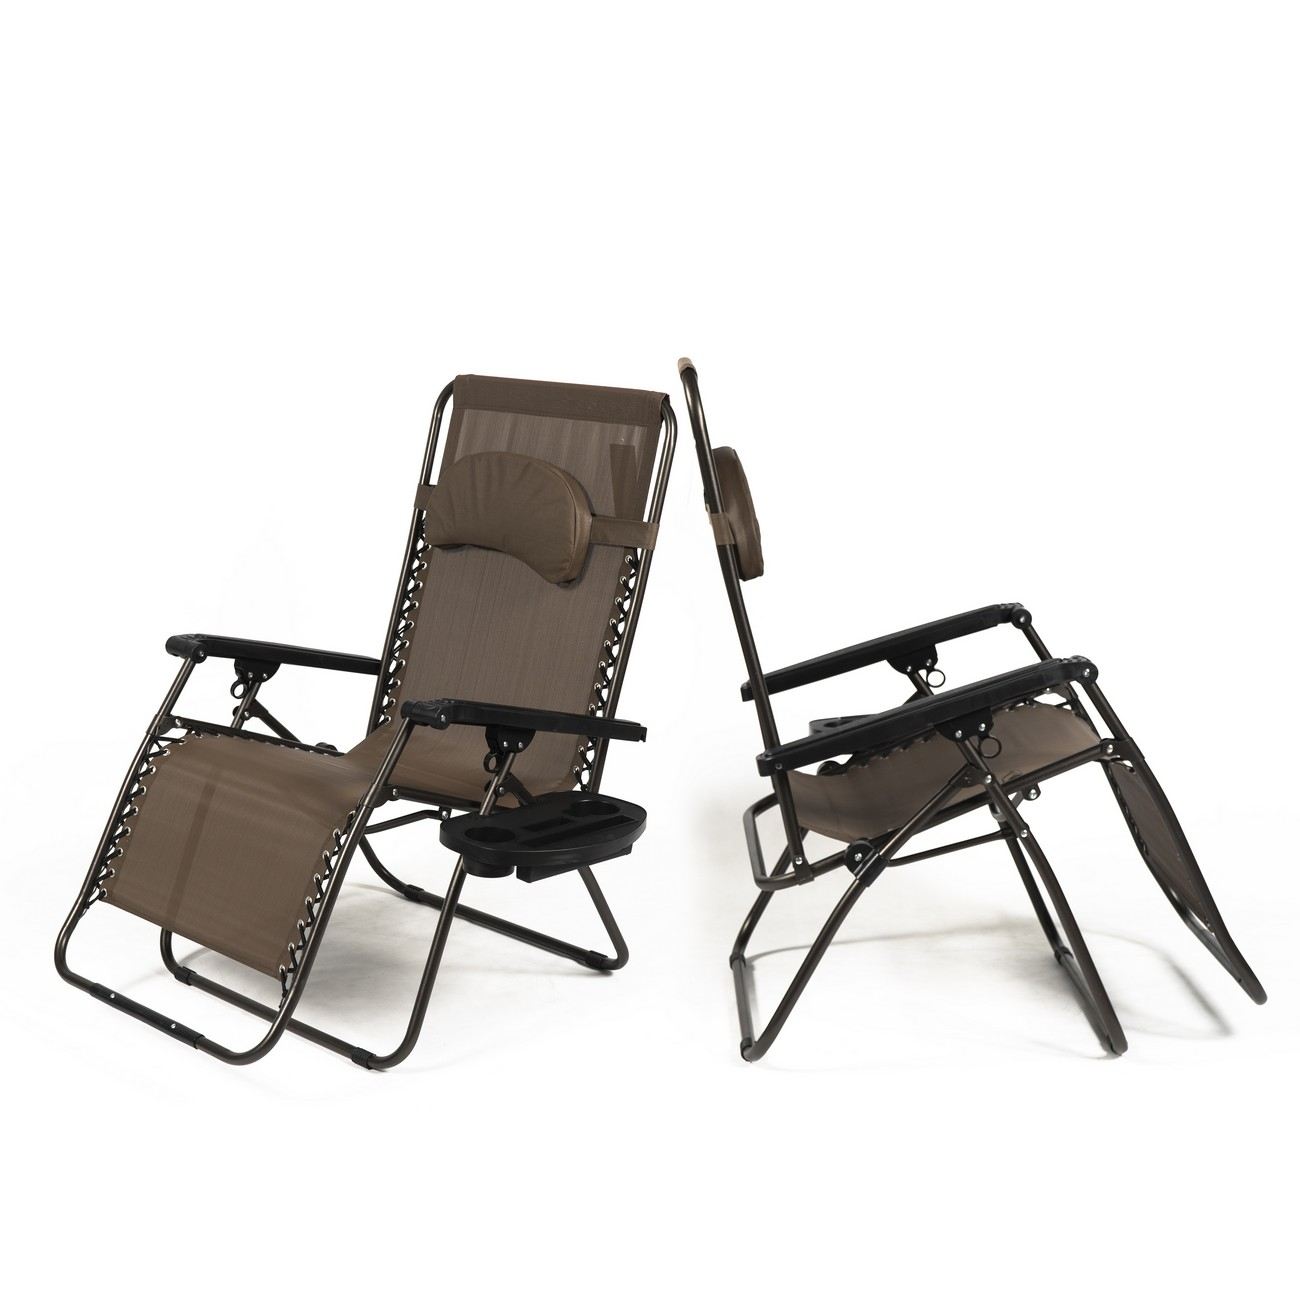 NEW Set of (2) Zero Gravity Chair XL Oversize Chairs